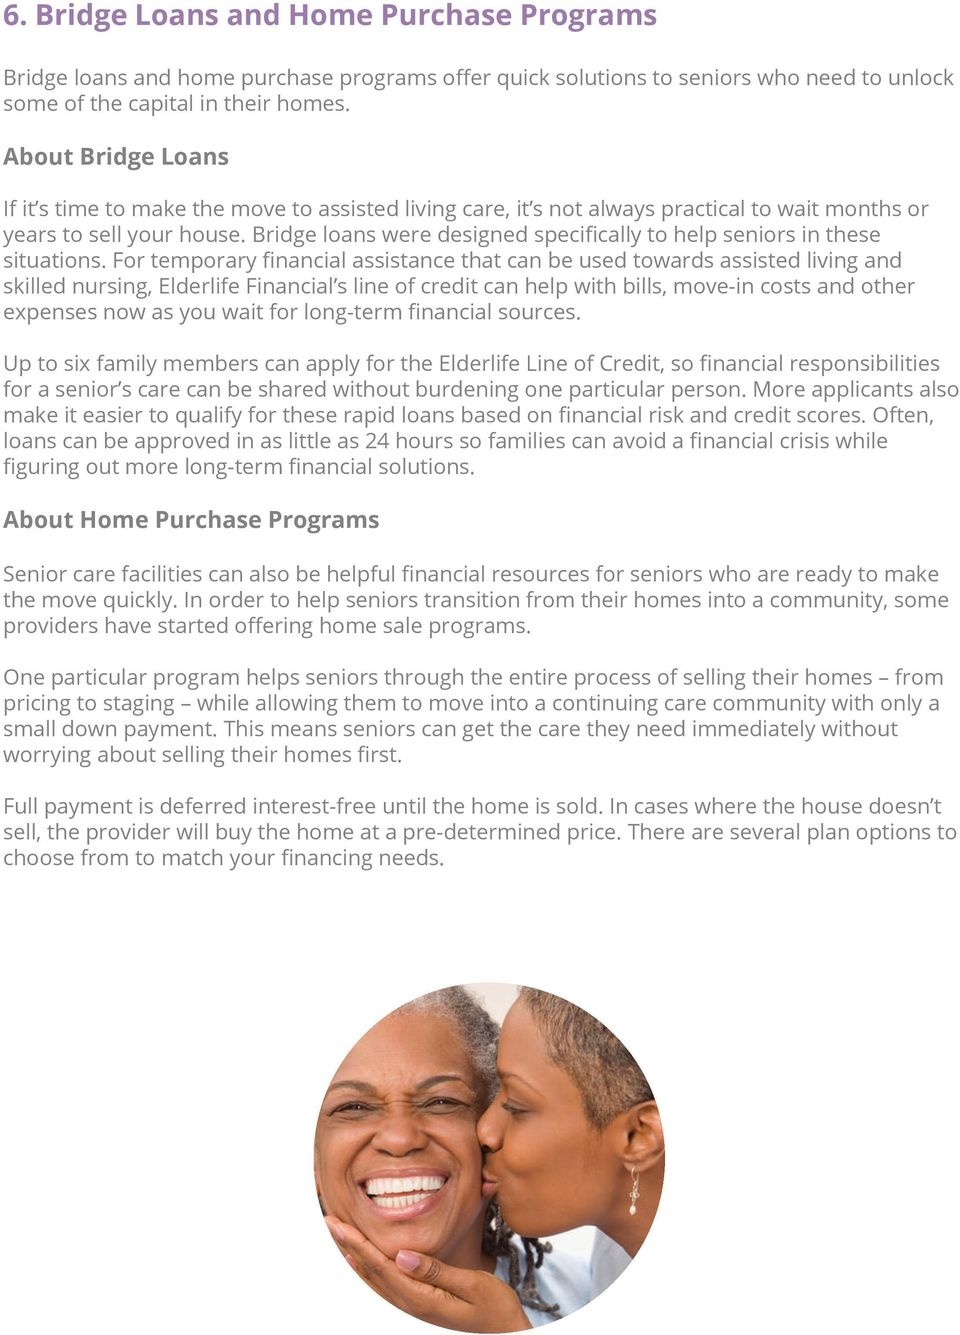 Bridge loans were designed specifically to help seniors in these situations.